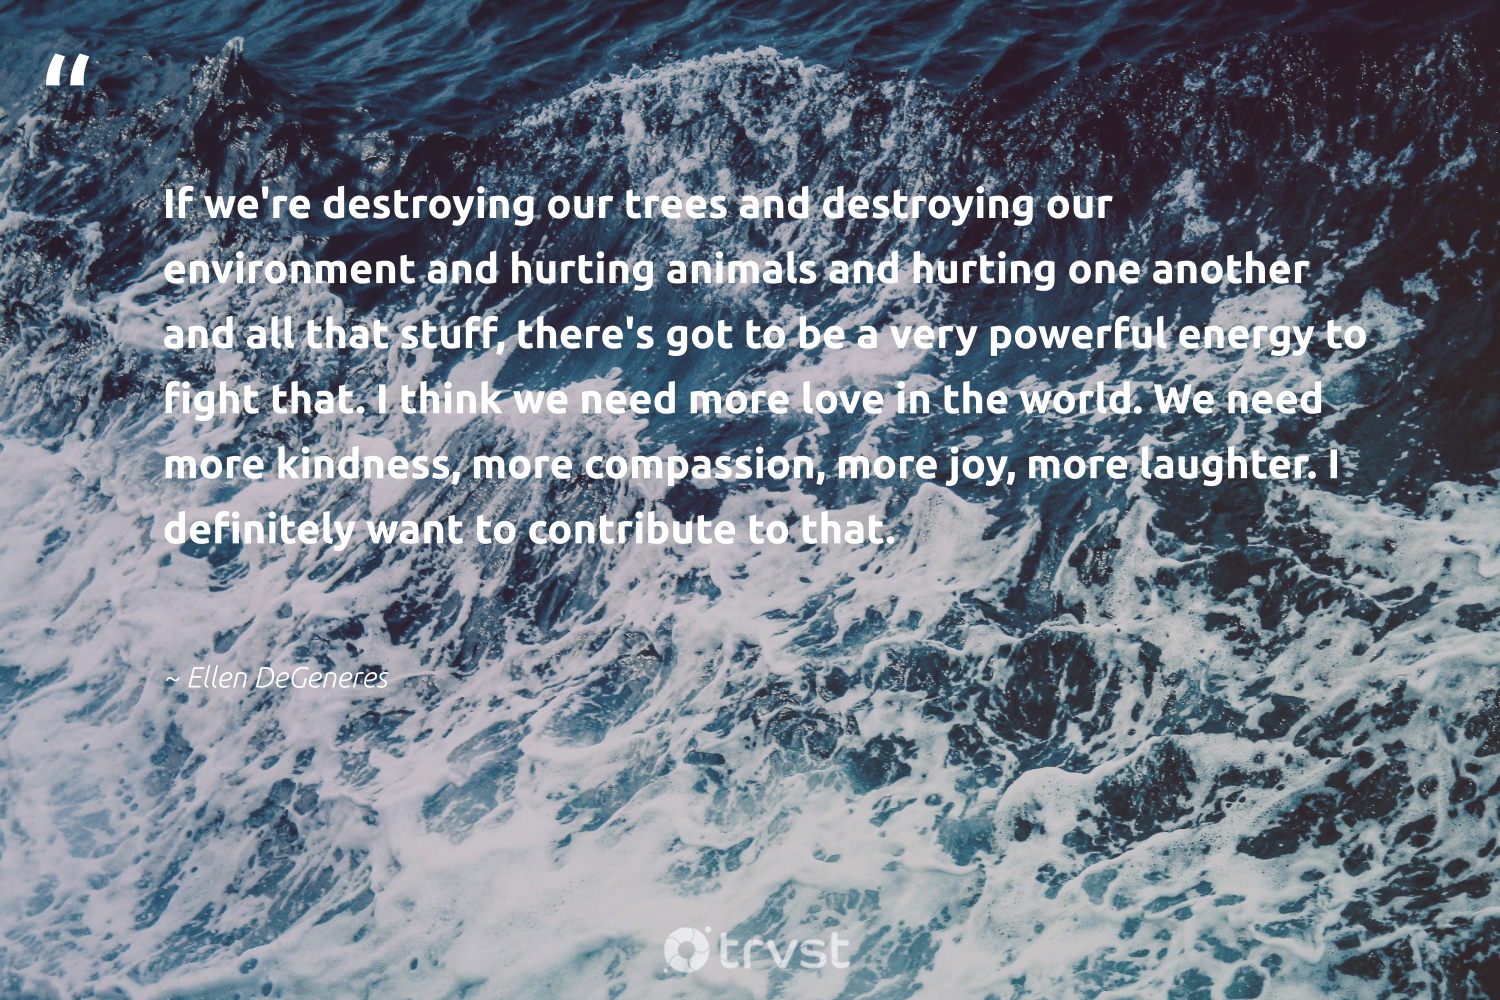 """If we're destroying our trees and destroying our environment and hurting animals and hurting one another and all that stuff, there's got to be a very powerful energy to fight that. I think we need more love in the world. We need more kindness, more compassion, more joy, more laughter. I definitely want to contribute to that.""  - Ellen DeGeneres #trvst #quotes #environment #love #energy #trees #animals #earth #sustainability #climatechange #collectiveaction #conservation"